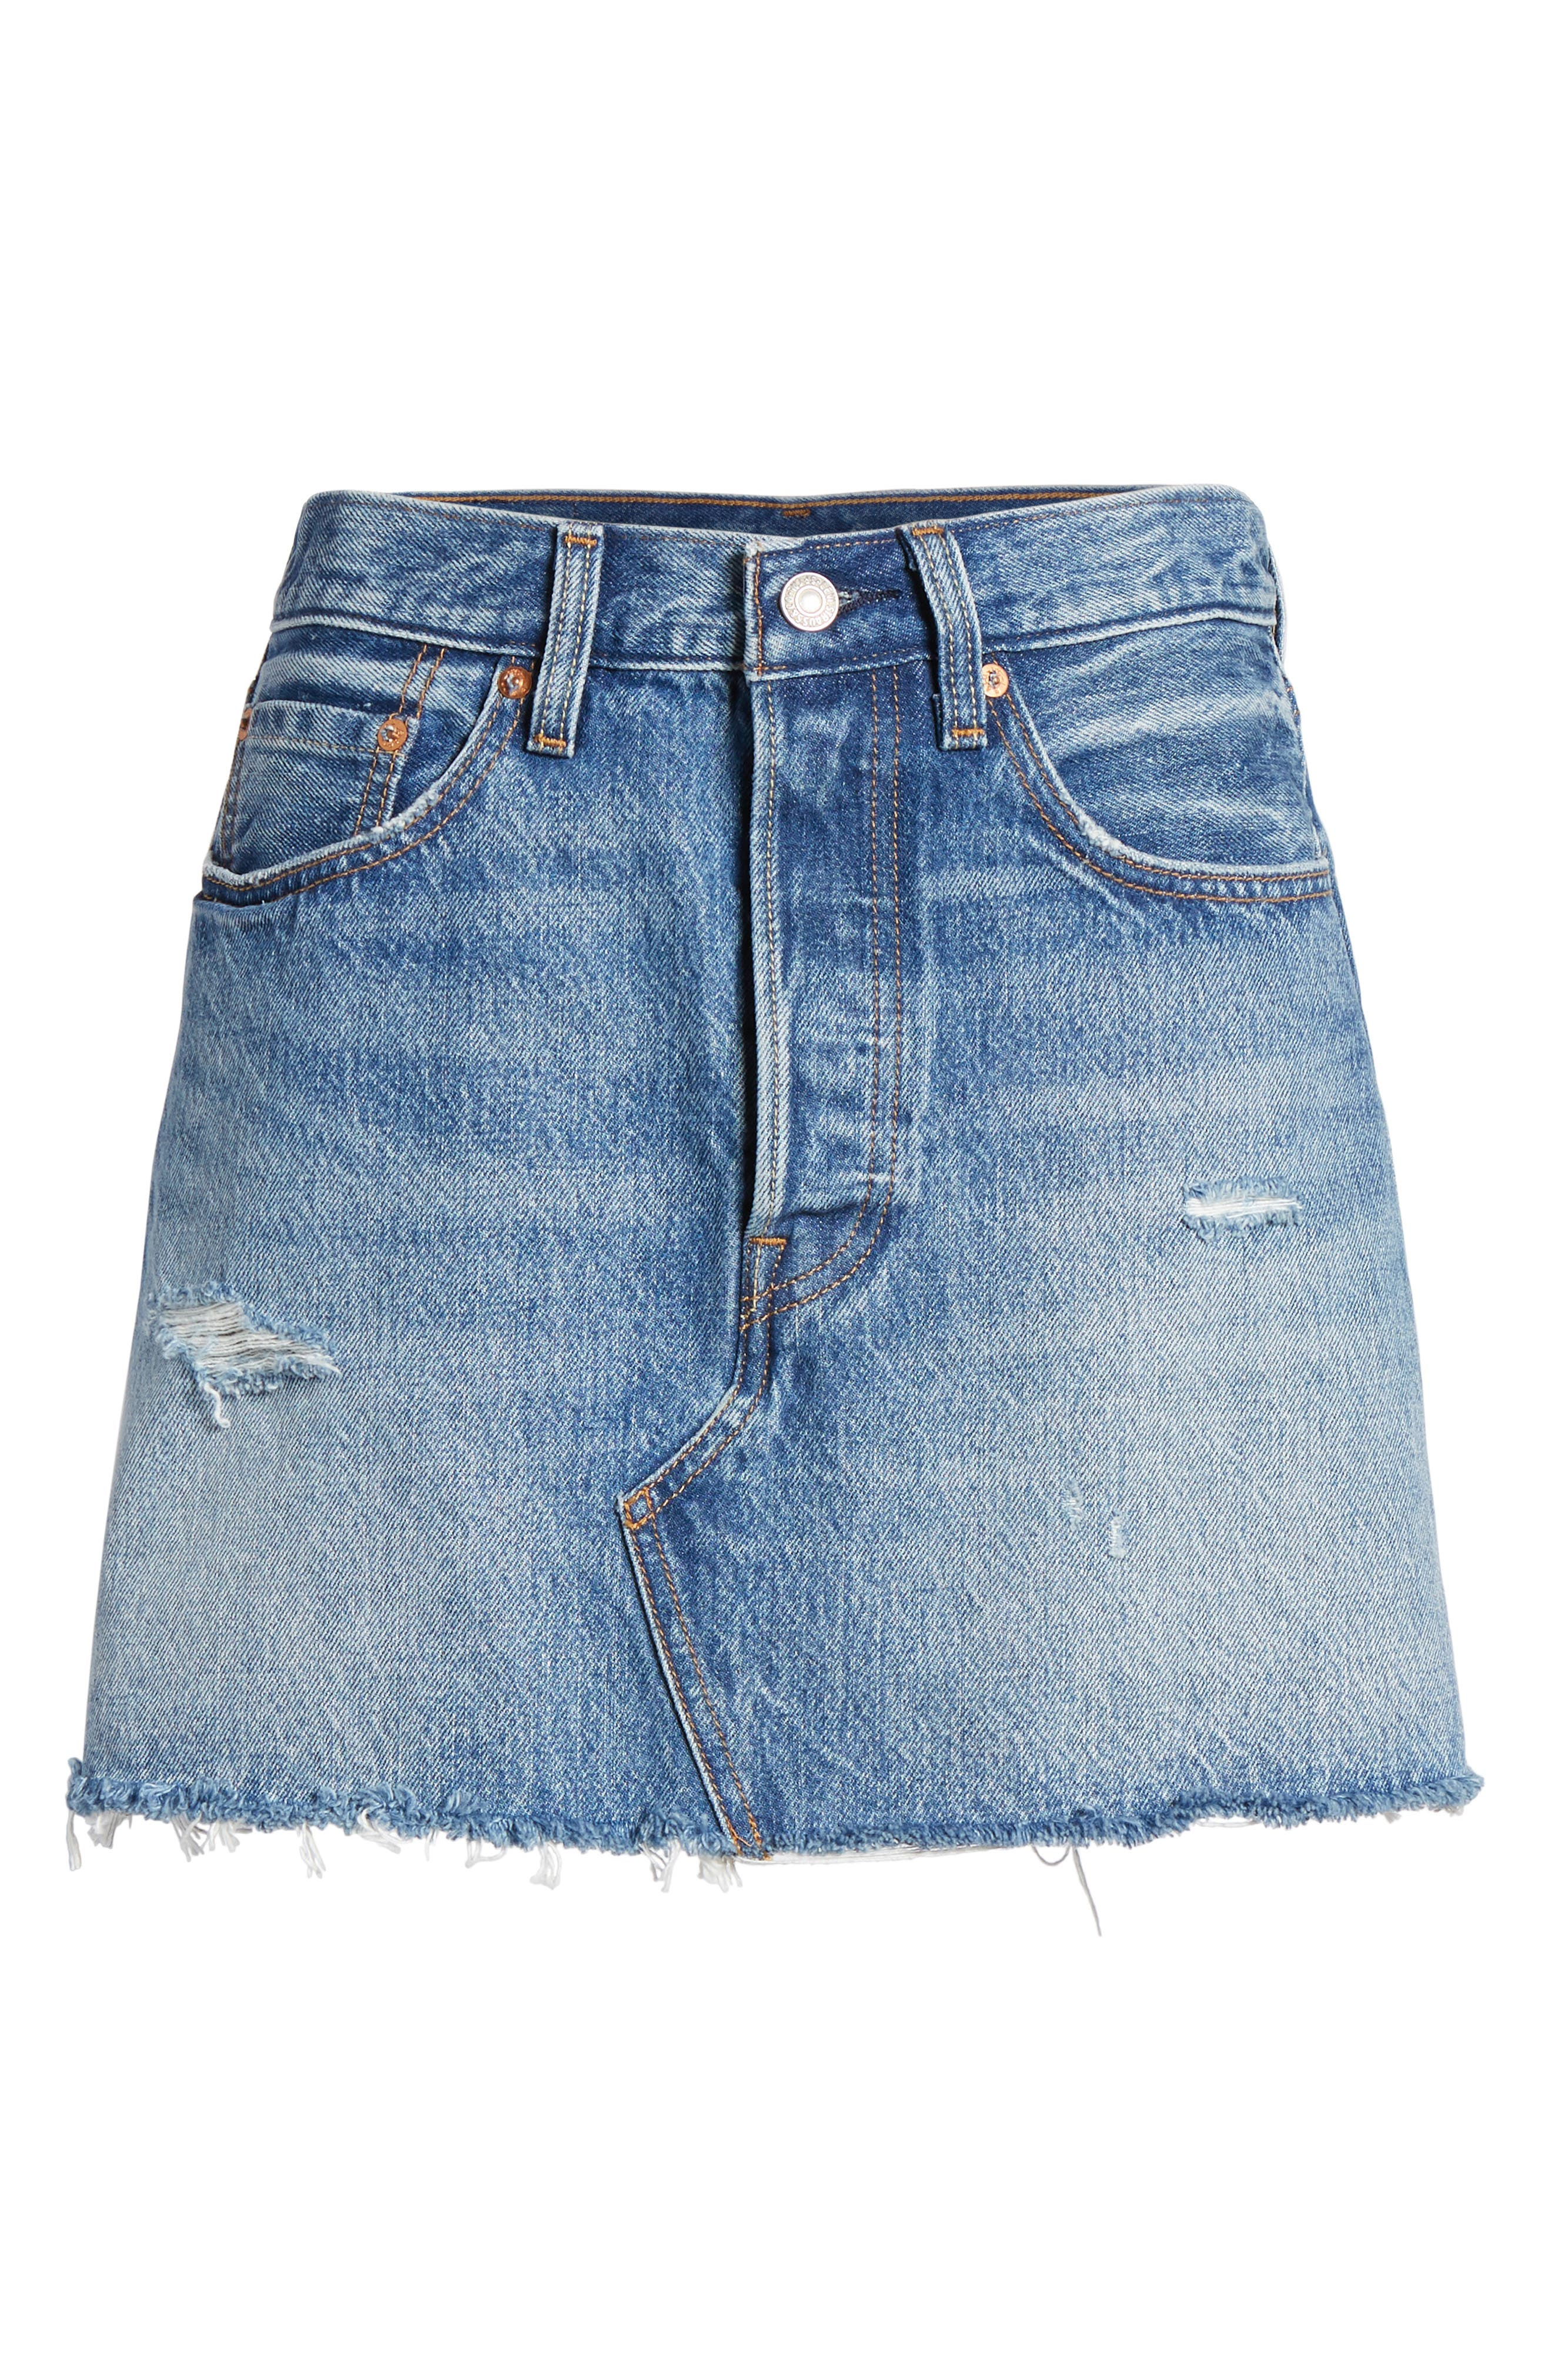 Distressed Denim Skirt,                             Alternate thumbnail 6, color,                             Hole In One